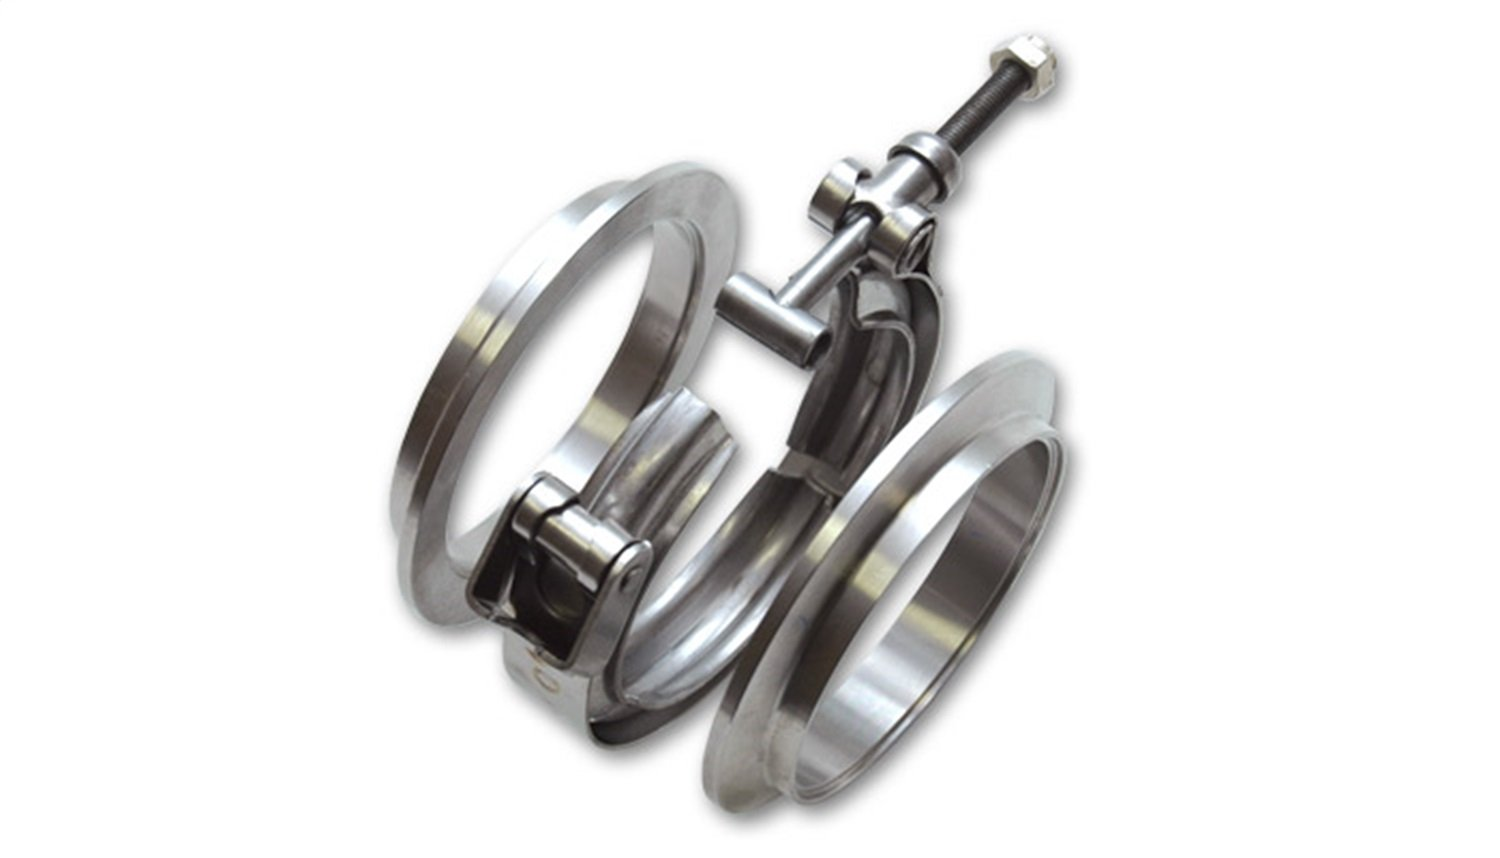 Vibrant 1494 Stainless Steel V-Band Flange Assembly by Vibrant Performance (Image #1)